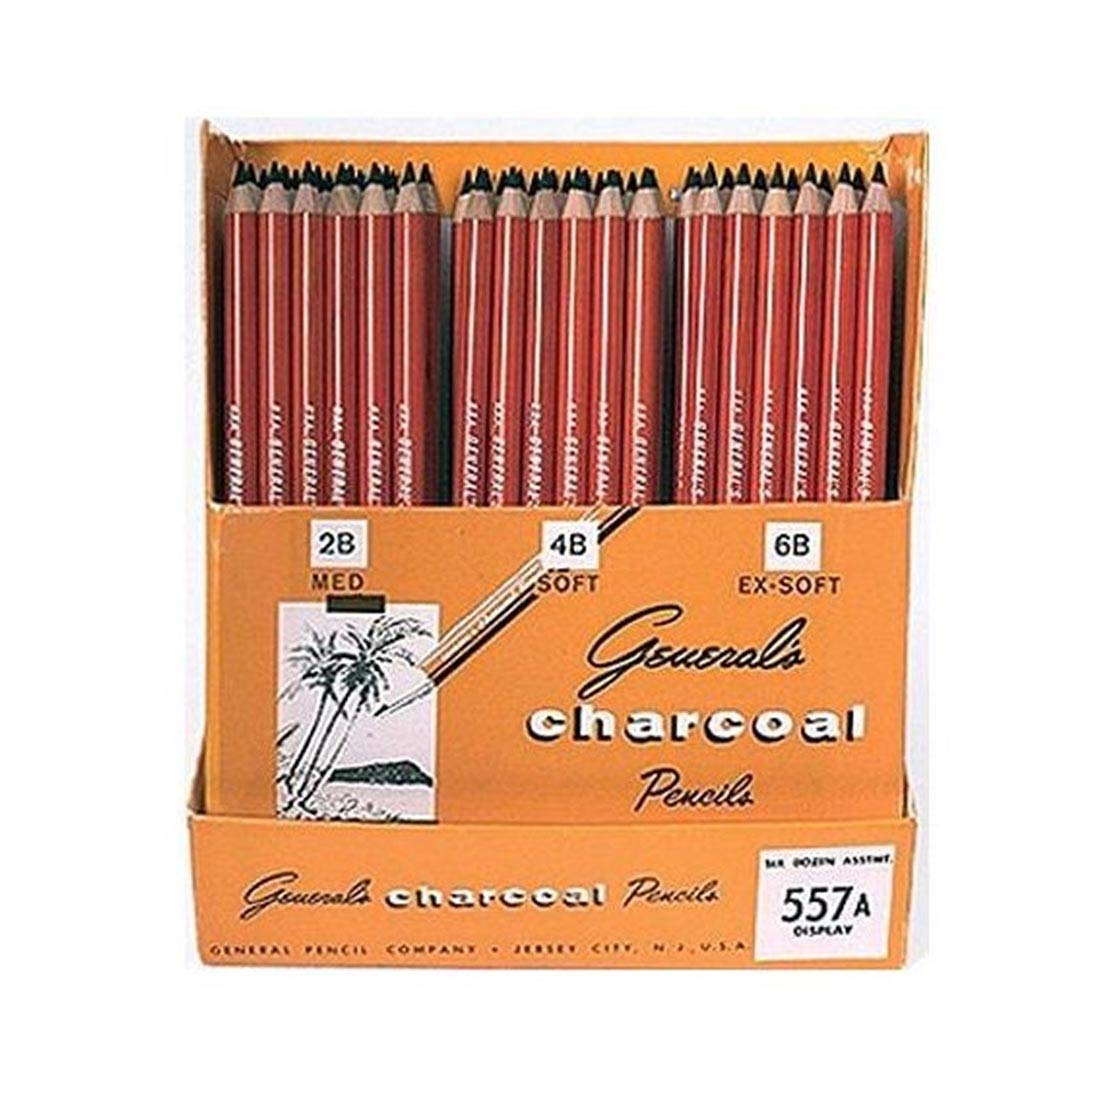 Charcoal Pencil Display by Sax